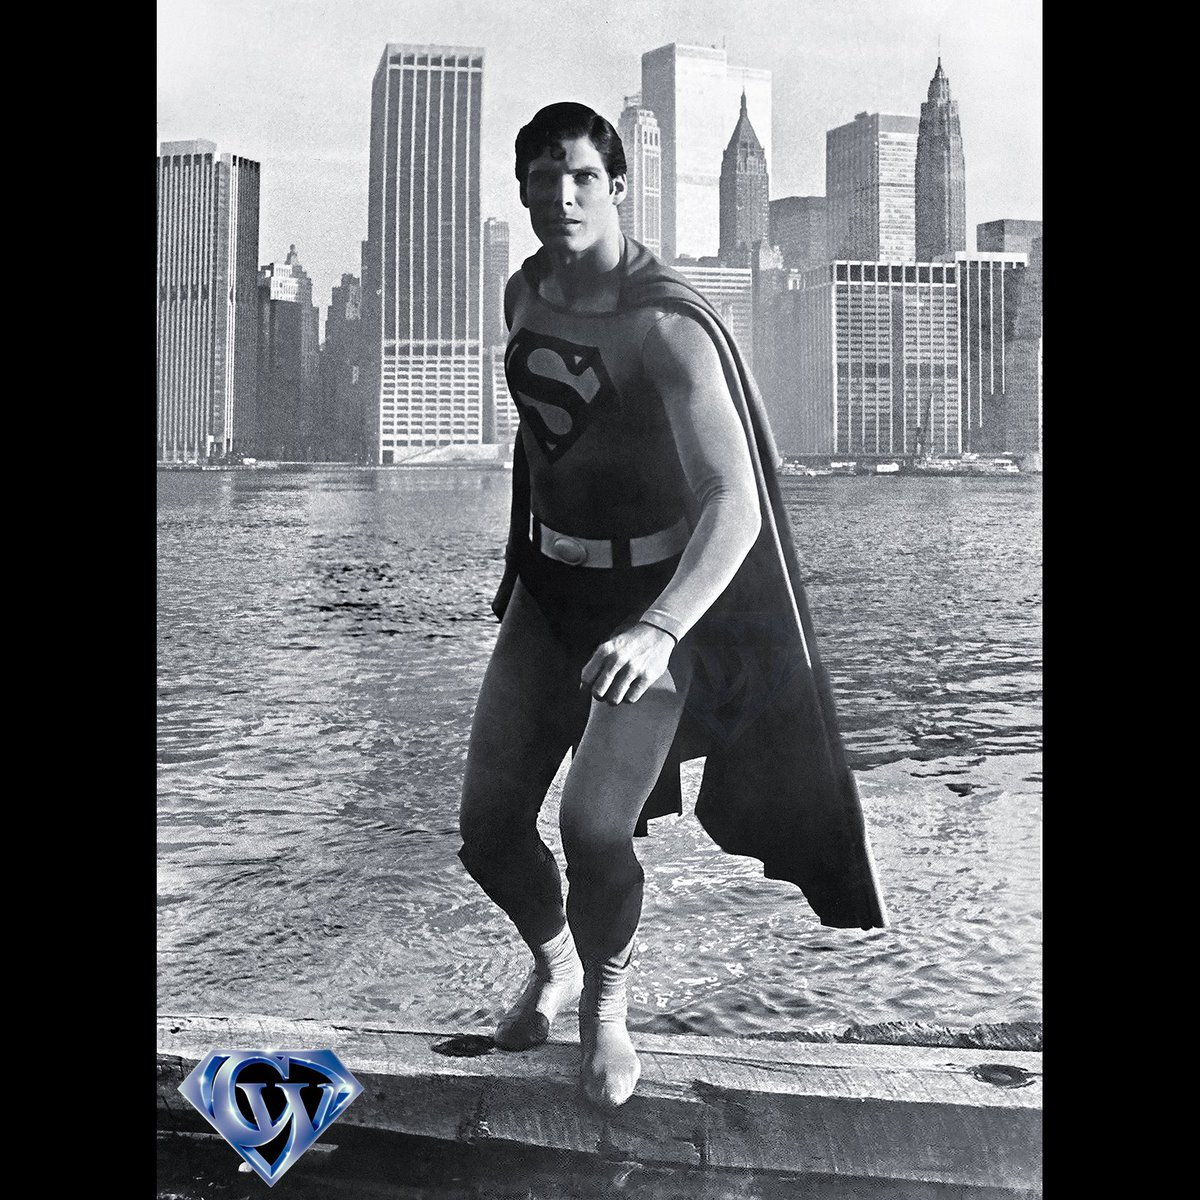 Superman prepares to Take Flight in Metropolis!  #christopherreeve #supermanthemovie #superman #supermanmovie #superman1978 #richarddonner #brooklynparkpier #richarddonnersuperman #comicbooks #superhero #dccinematicuniverse #dccomics #metropolis #warnerbrosstudios #manofsteelpic.twitter.com/Jd94IHMy1M